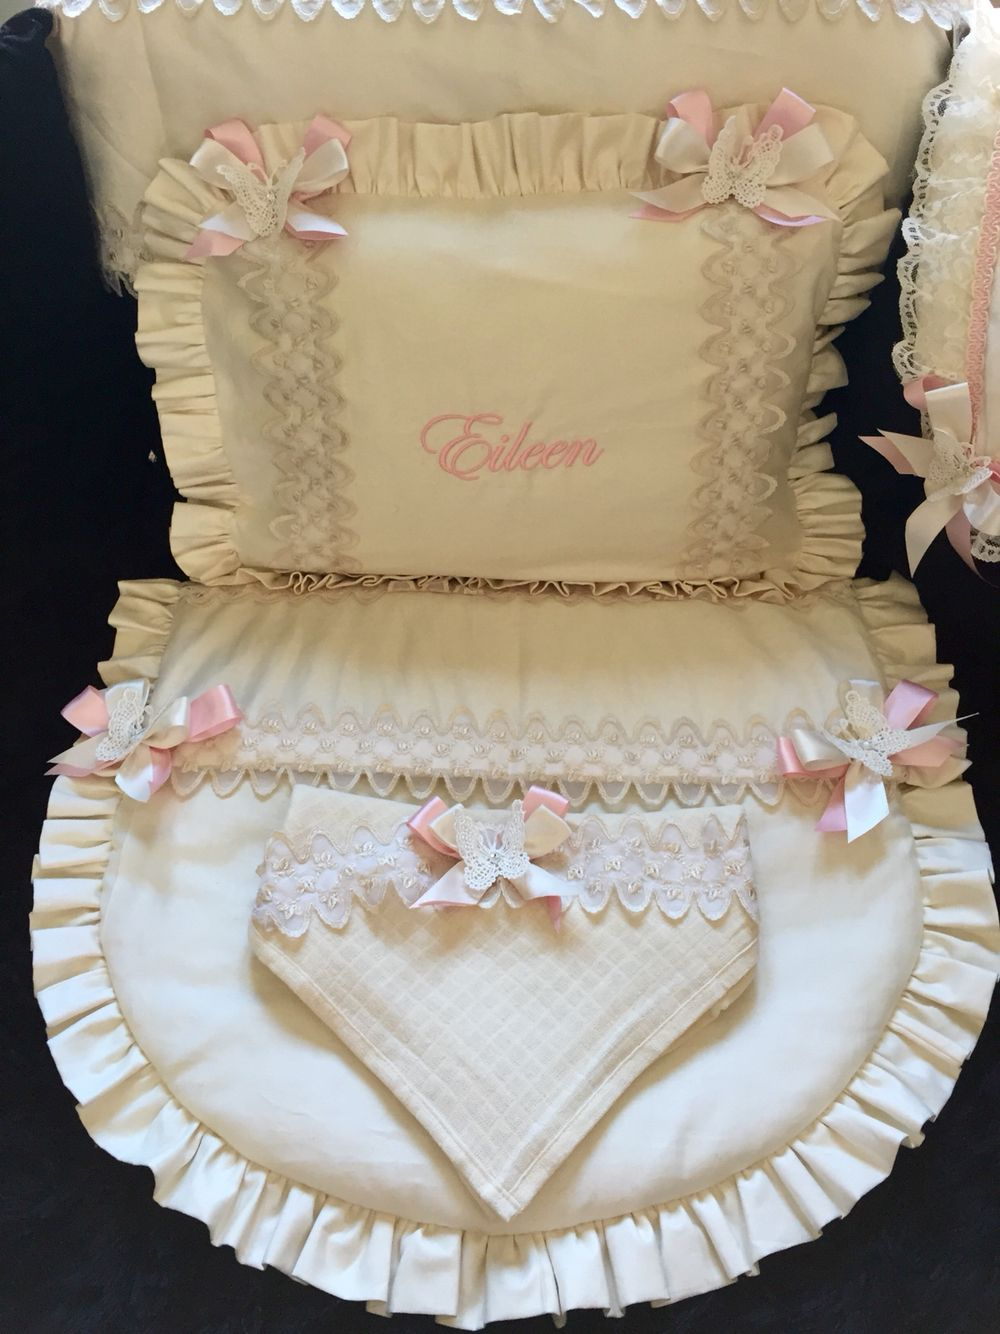 Cream With Shear Rose Bud Lace Pram Set Personalised In